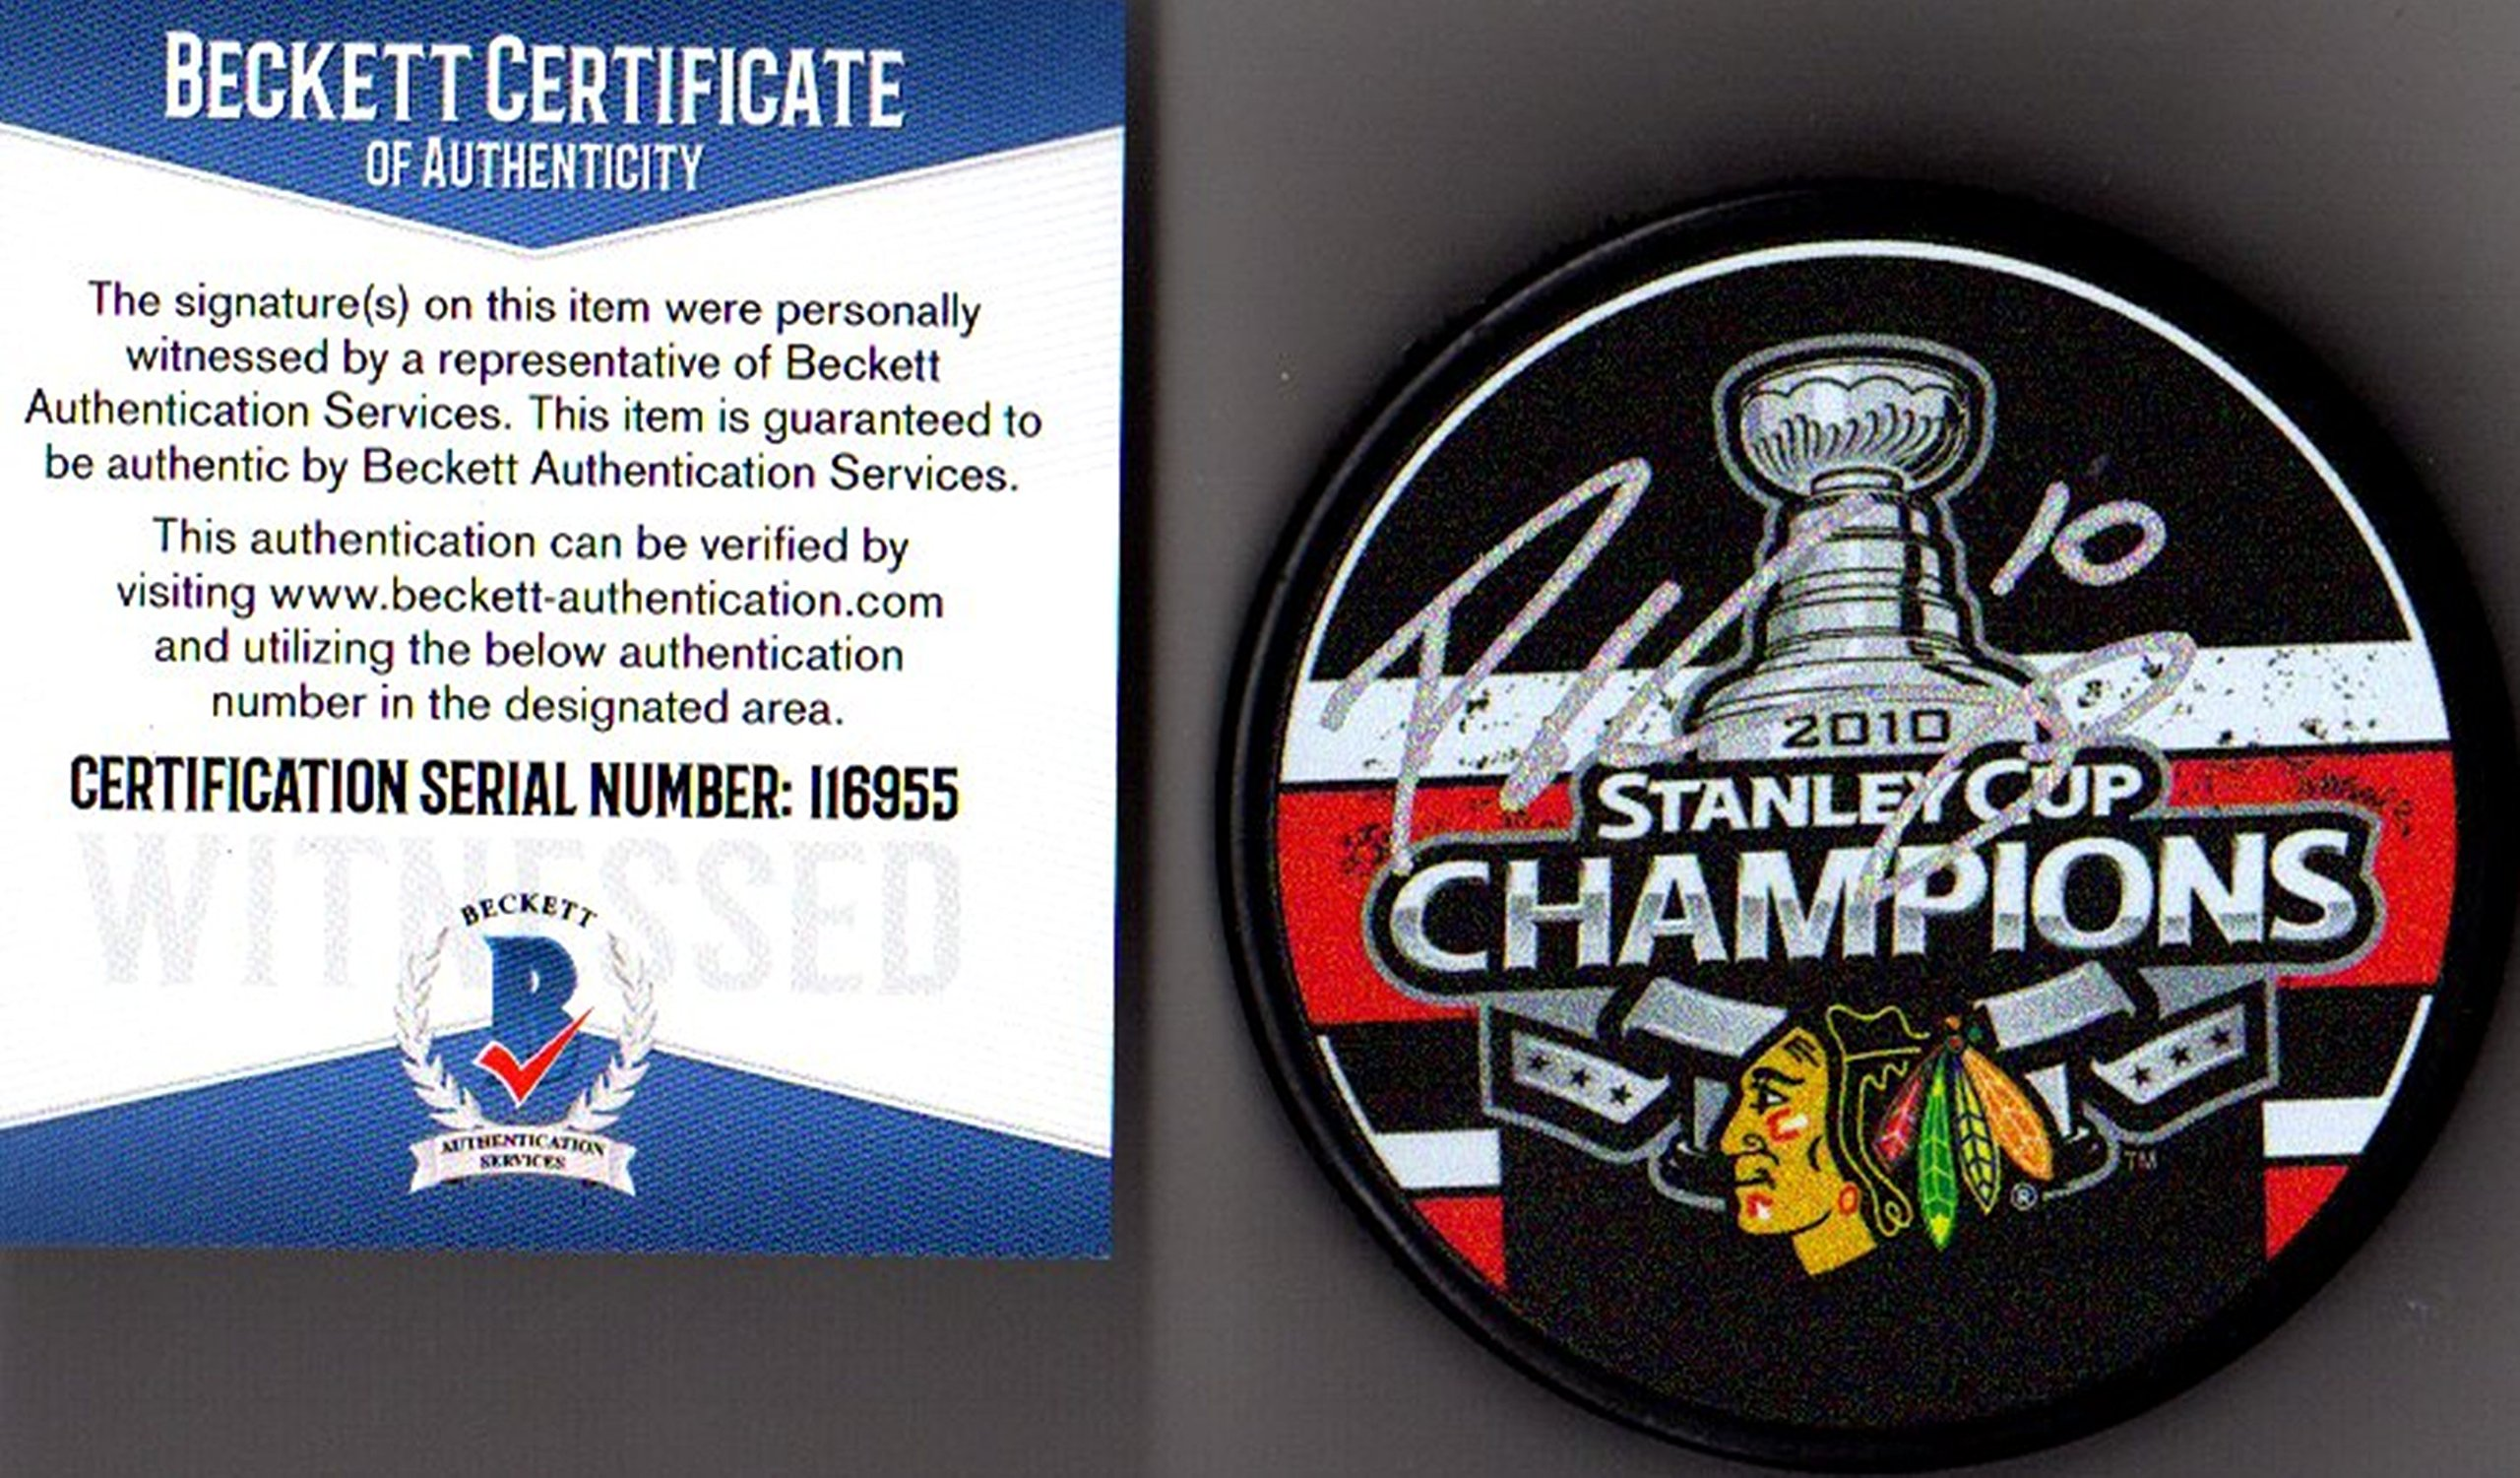 Beckett BAS Patrick Sharp Autographed Signed 2010 Stanley Cup Champions Puck